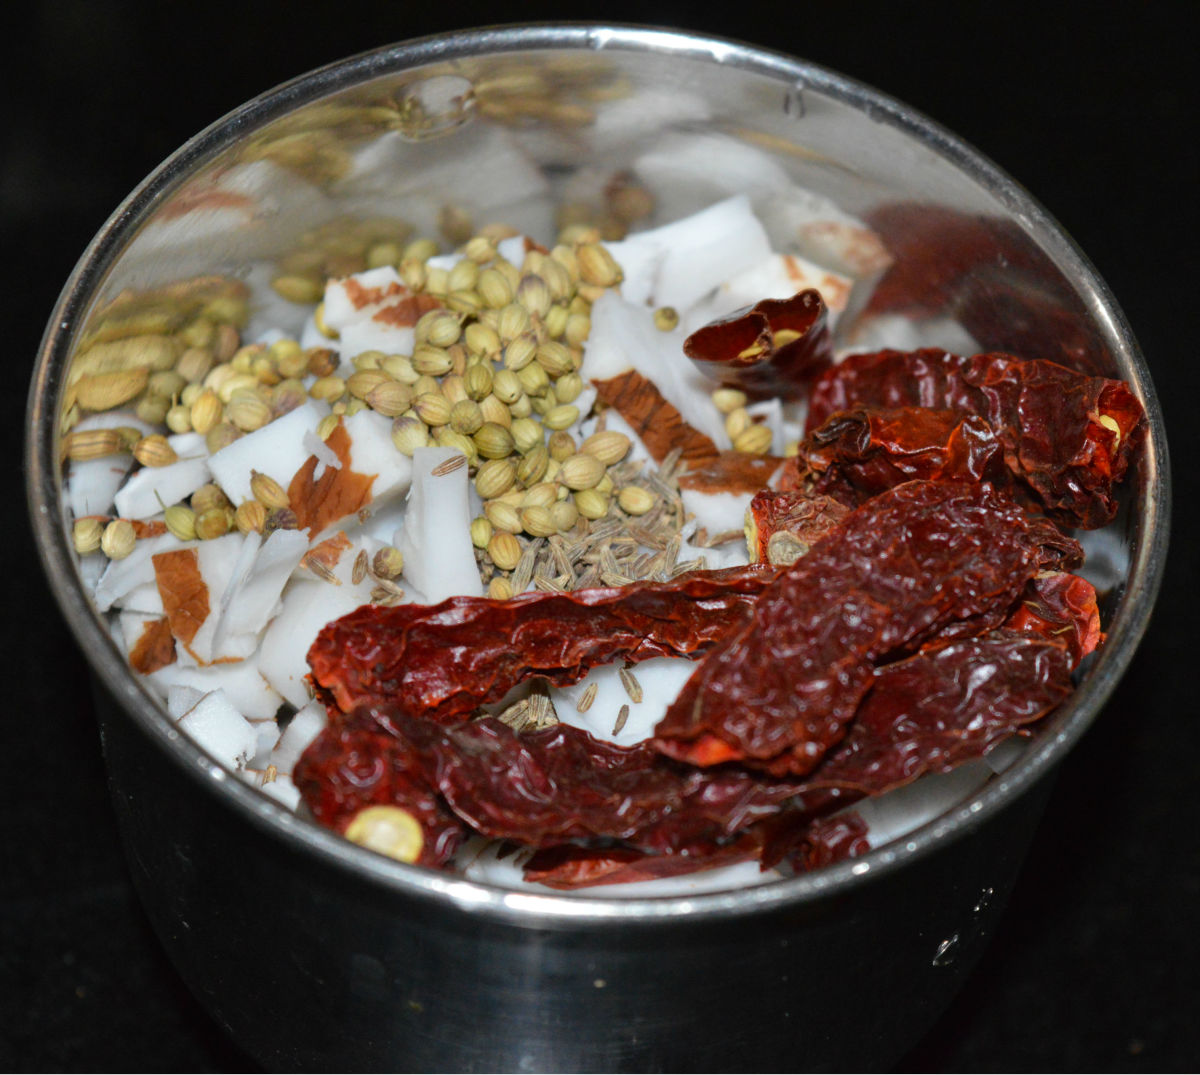 Step three: In the meanwhile, make masala paste for the gravy. Take grated coconut, cumin seeds, coriander seeds, dry red chilies, hing powder, and raw rice in a mixer jar. Grind, adding water to get a near-smooth paste.